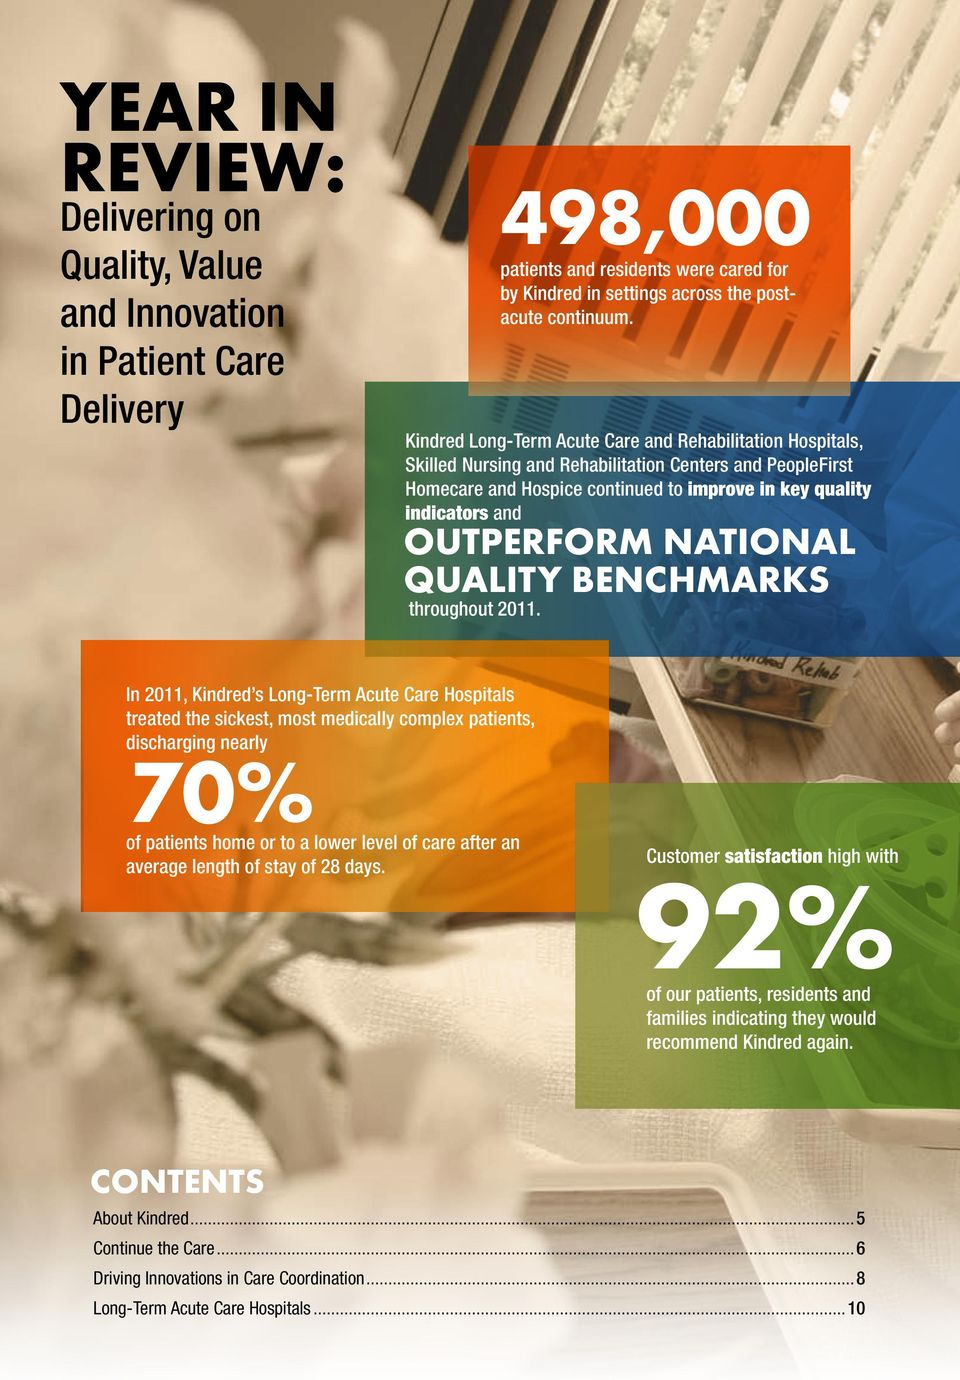 outperform national QUALITY benchmarks throughout 2011.